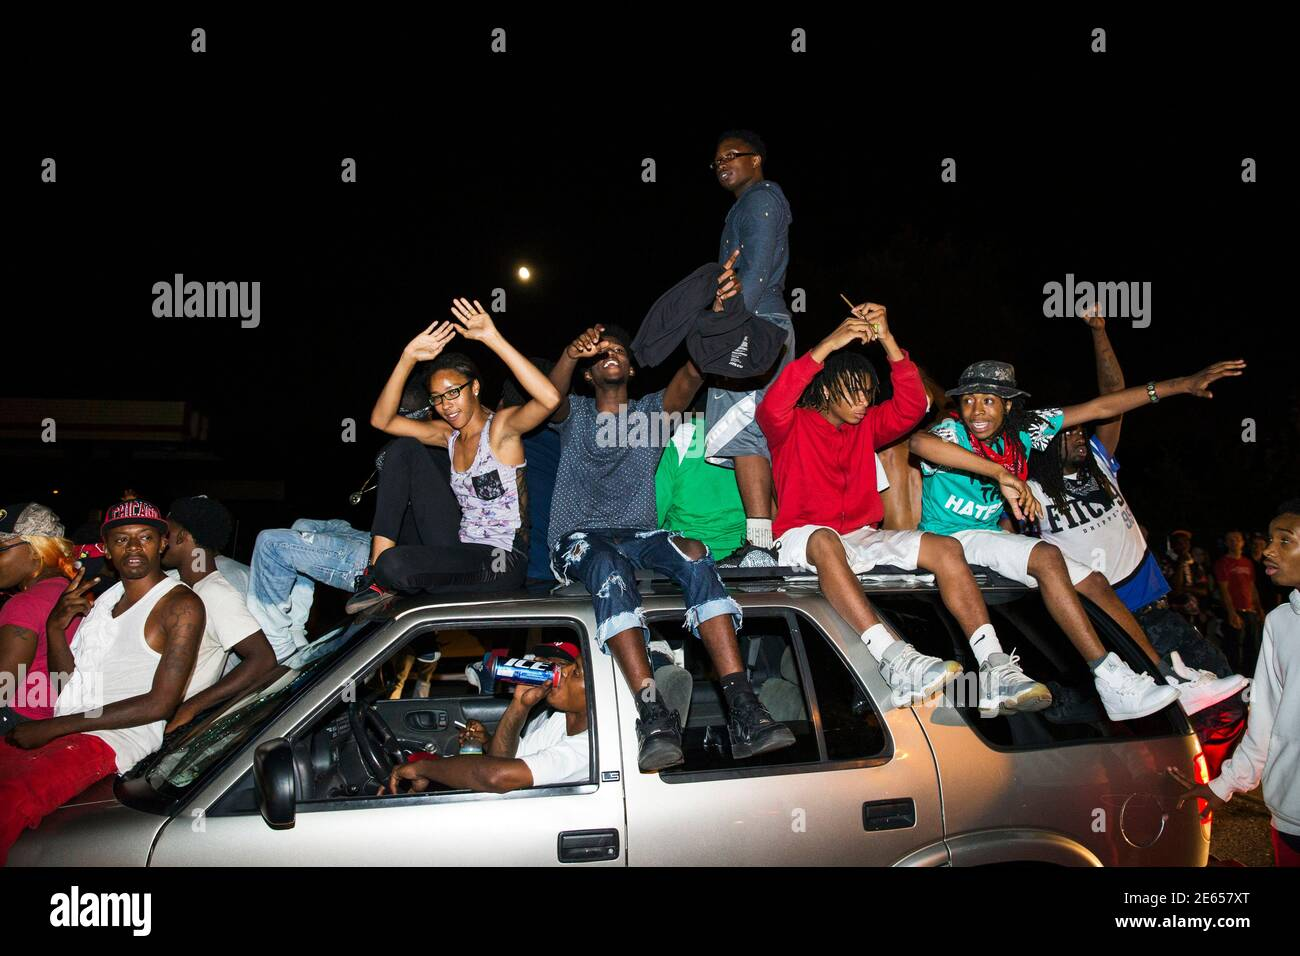 Protesters chant as they ride on a car during a peaceful demonstration as communities continue to react to the shooting of Michael Brown in Ferguson, Missouri August 15, 2014. Missouri's governor Jay Nixon moved to ease tensions on Thursday after days of racially charged protests over the police shooting of Brown, an unarmed black teenager, putting the African-American captain of the Highway Patrol Ron Johnson in charge of security in the St. Louis suburb of Ferguson. REUTERS/Lucas Jackson (UNITED STATES - Tags: CIVIL UNREST CRIME LAW) Stock Photo